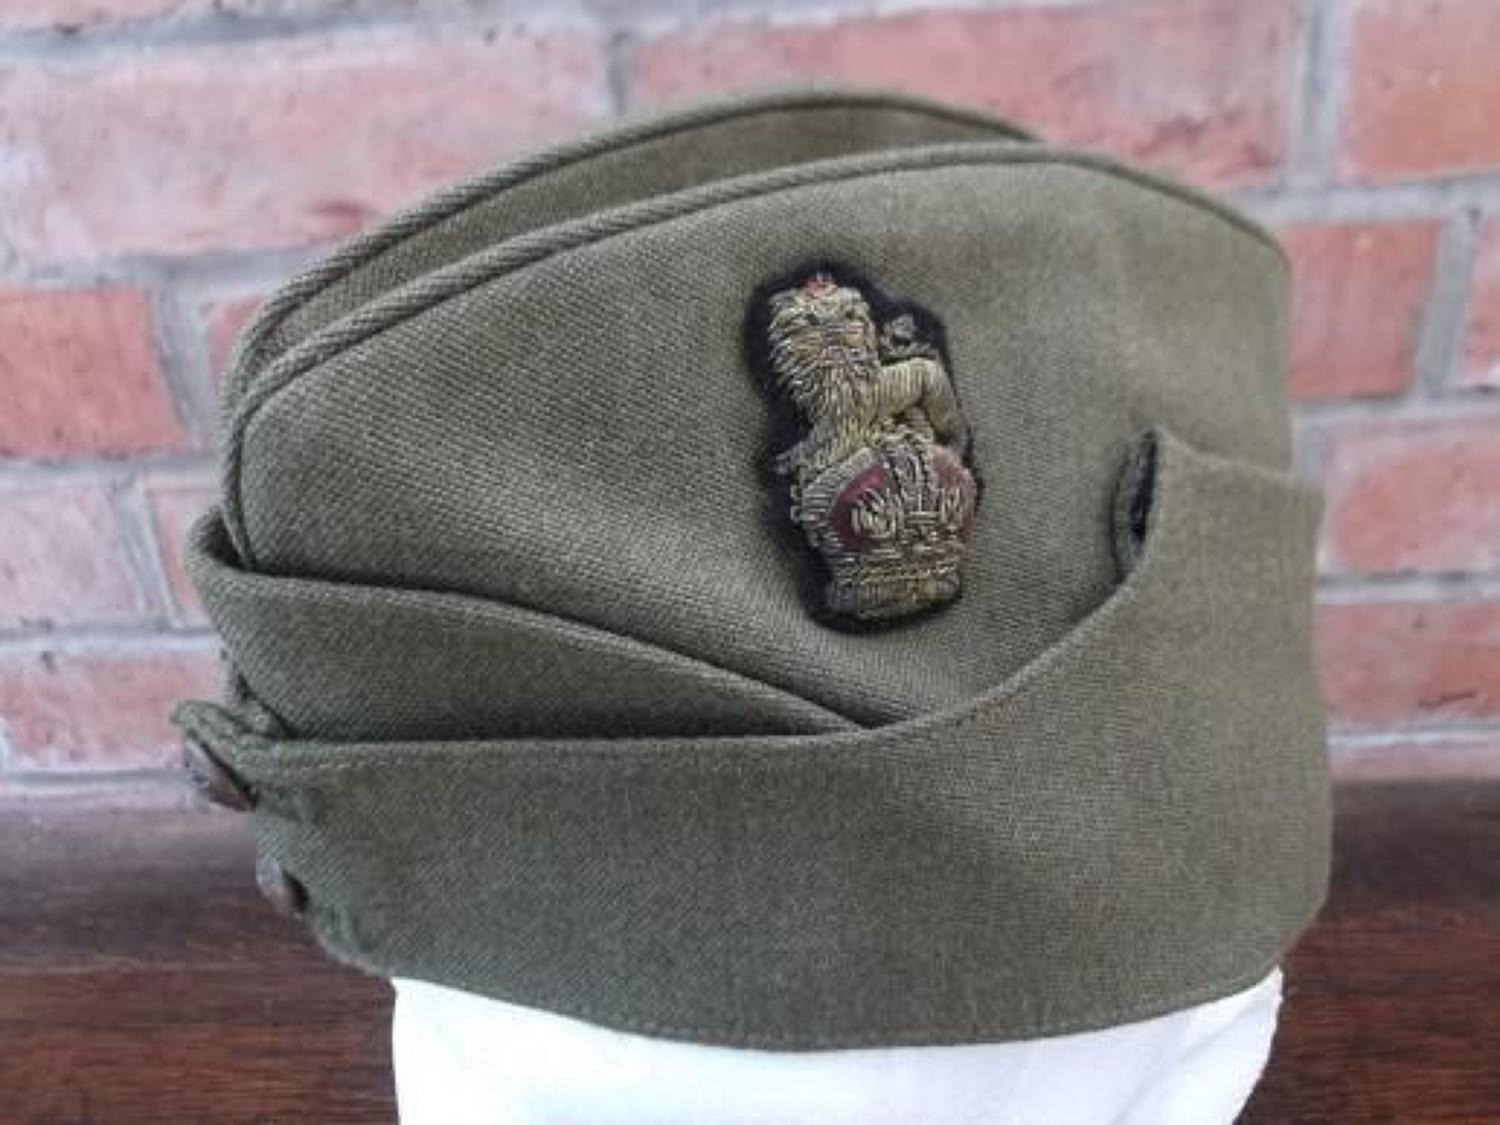 WW2 BRITISH OFFICERS STAFF RANK BRIGADIER KHAKI SIDE CAP